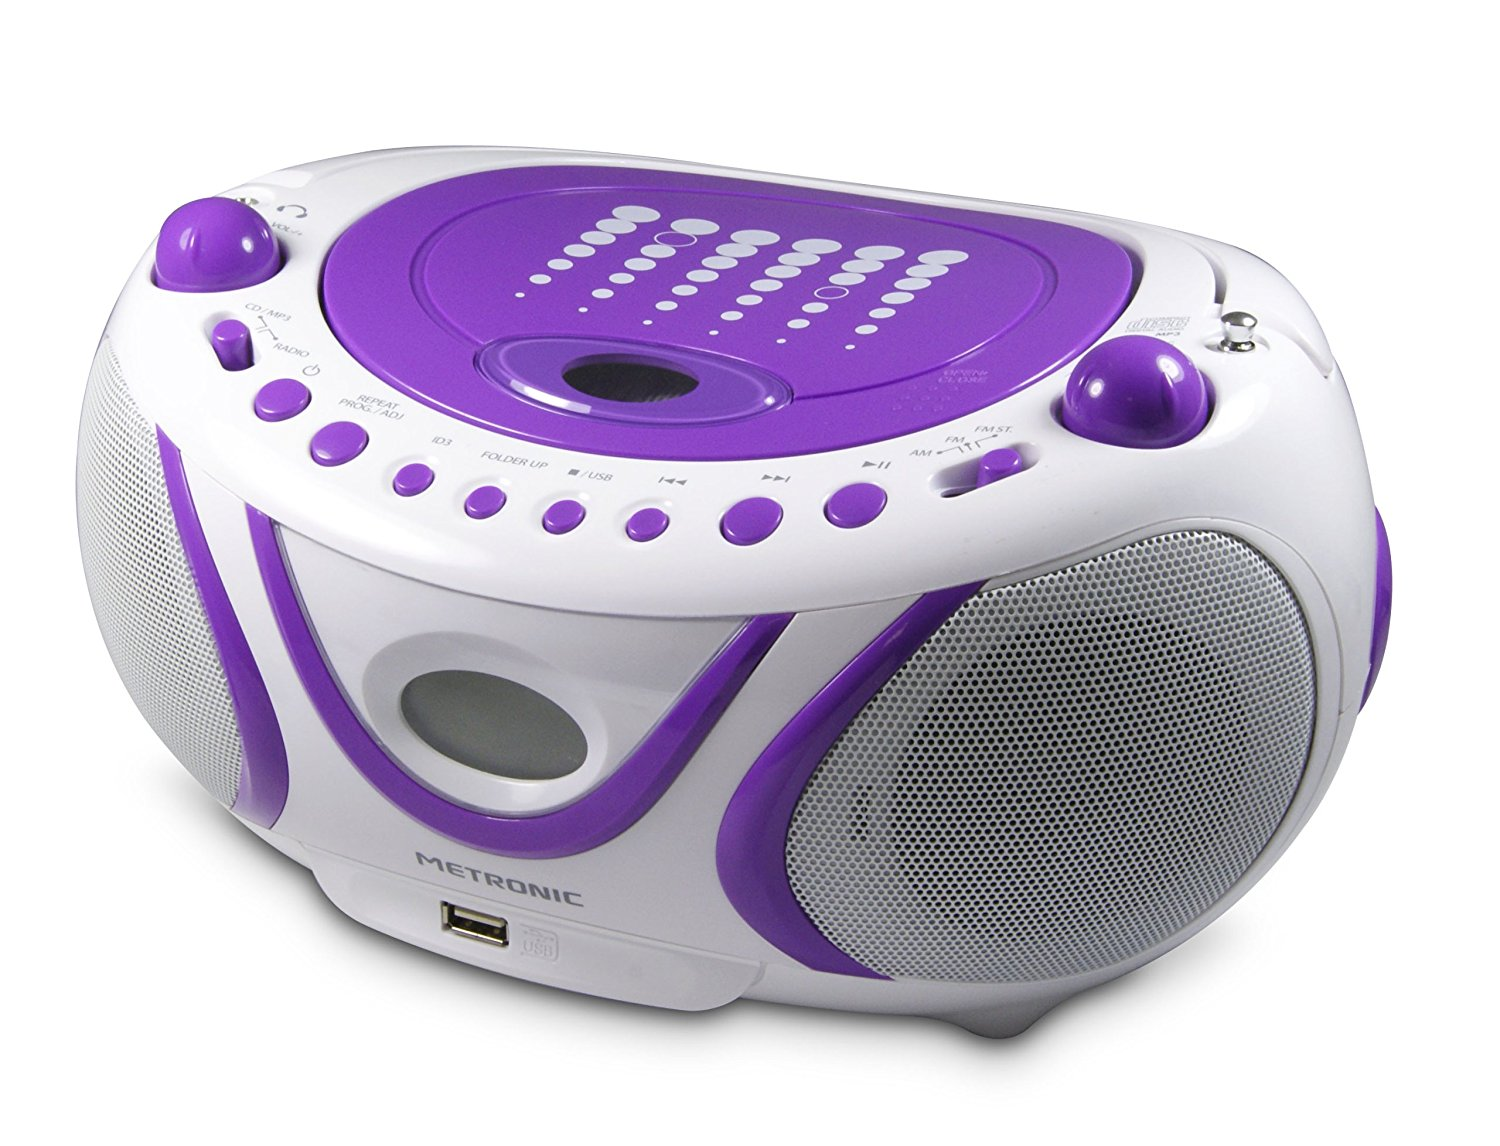 Soundmaster BCD 480 Radiorekorder (CD-Player)